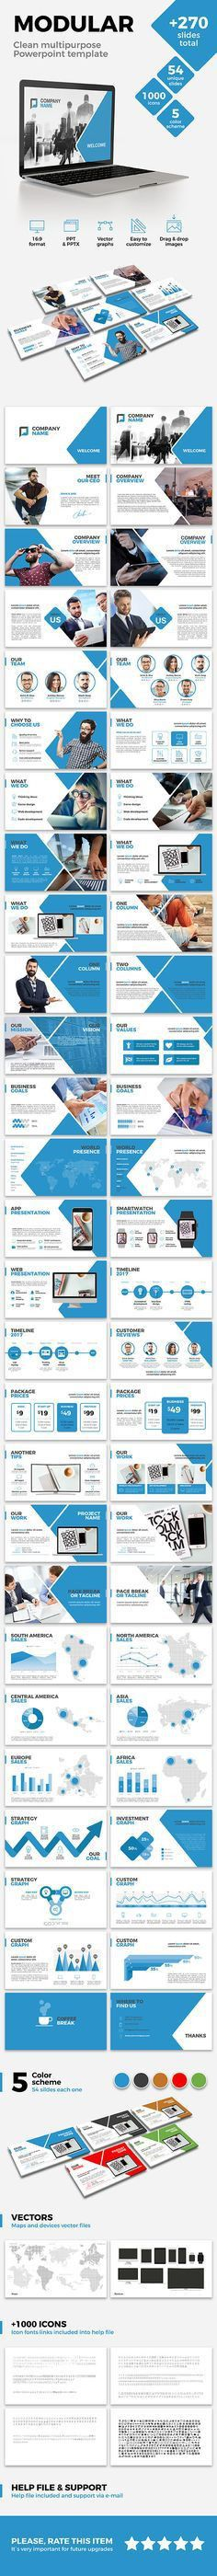 company profile powerpoint template dark blue preview | PPT ...